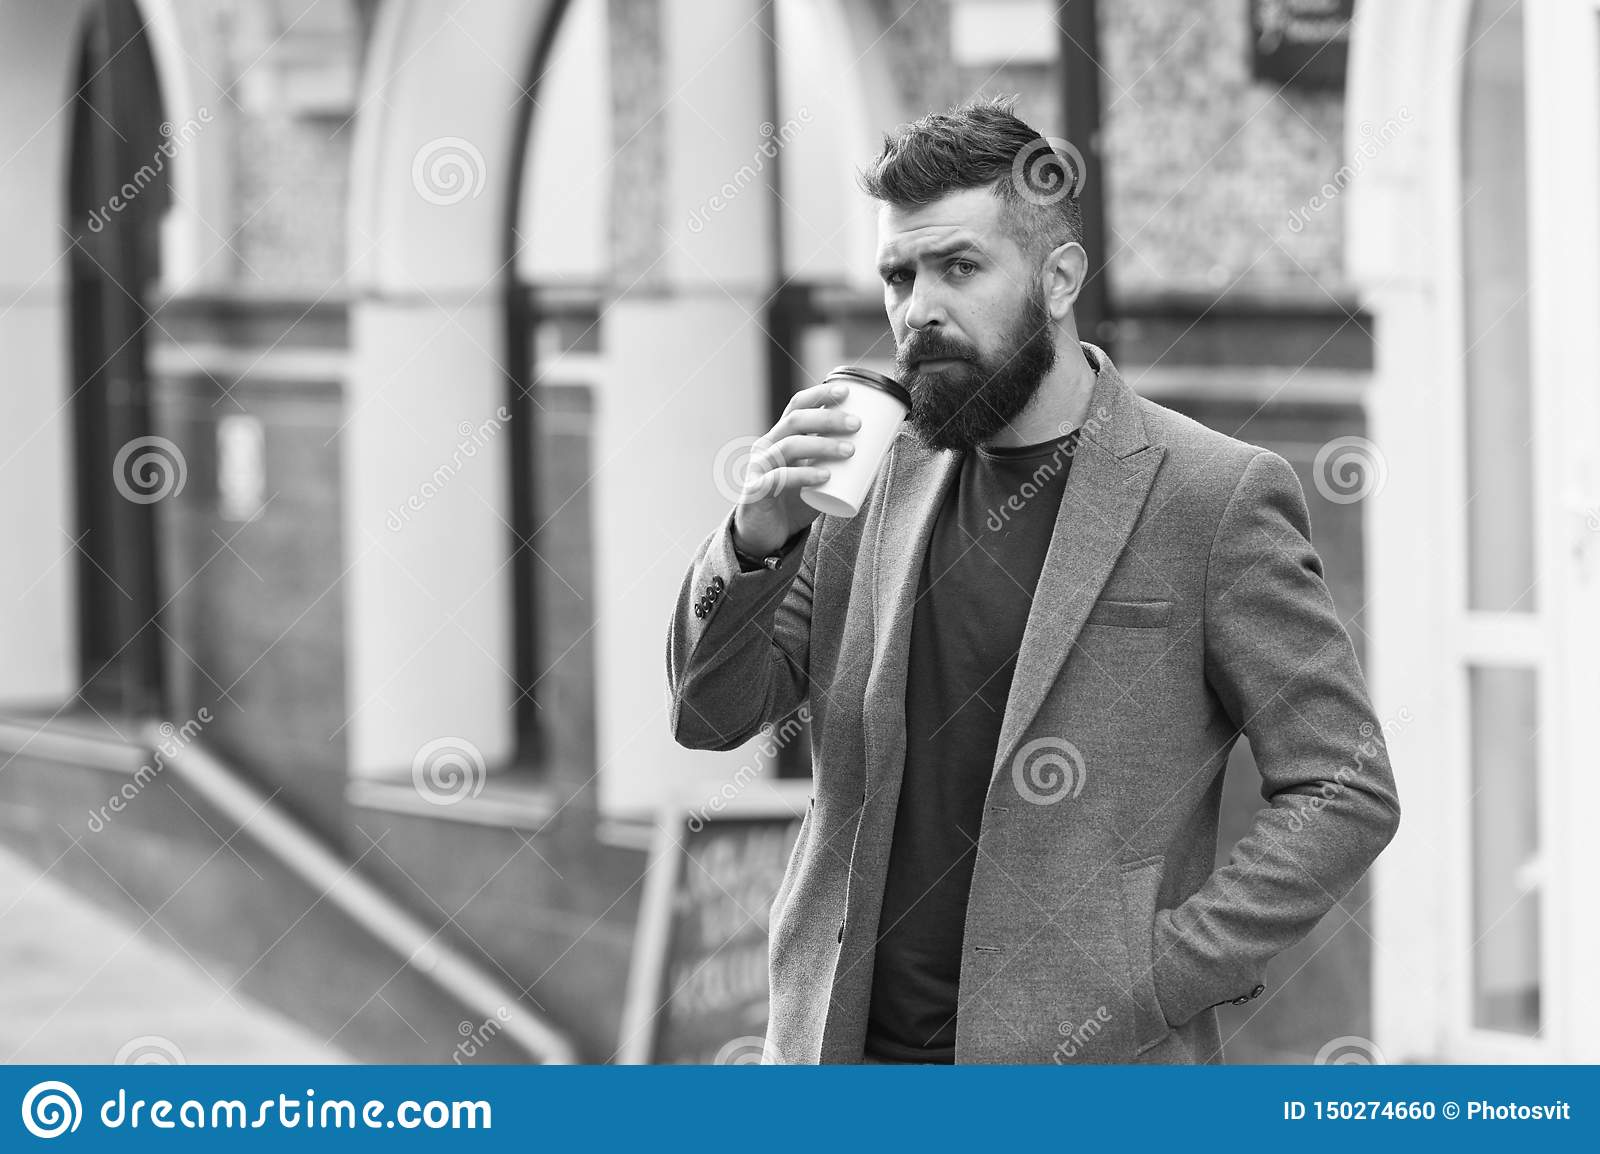 Drinking coffee on the go. Businessman lumbersexual appearance enjoy coffee break out of business center. Relax and